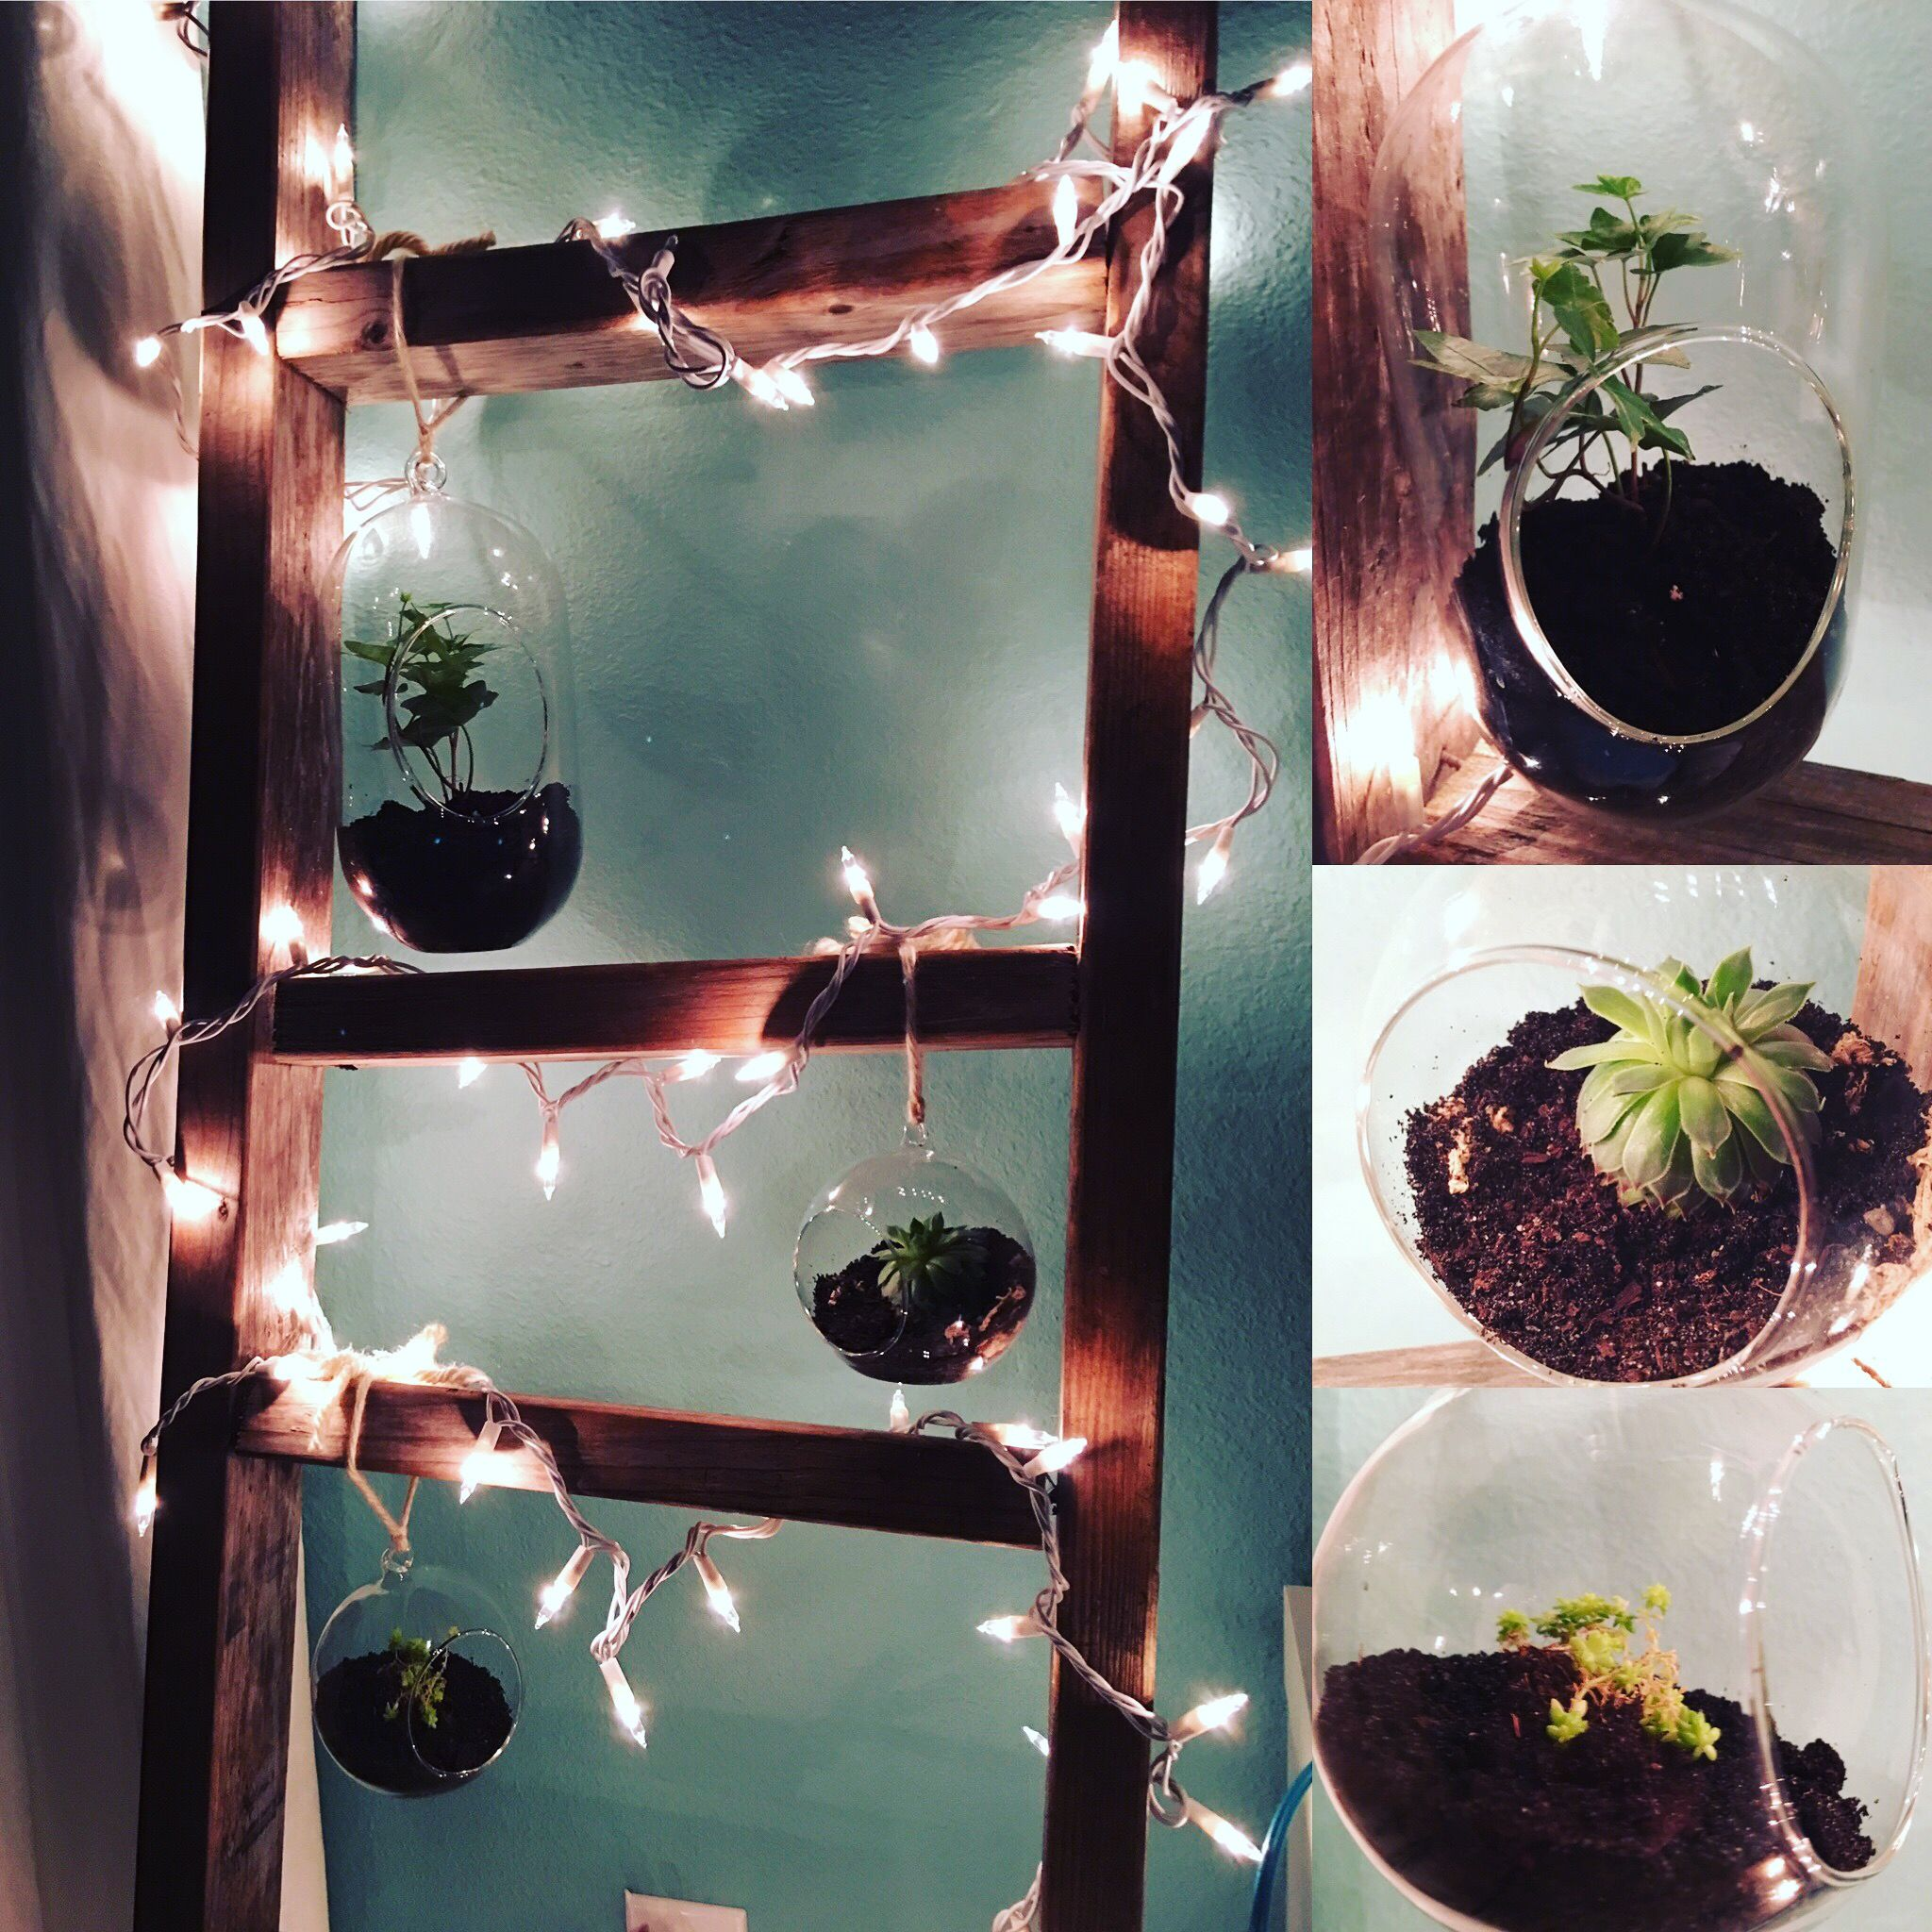 Terrarium garden succulents and ivy on old wooden ladder